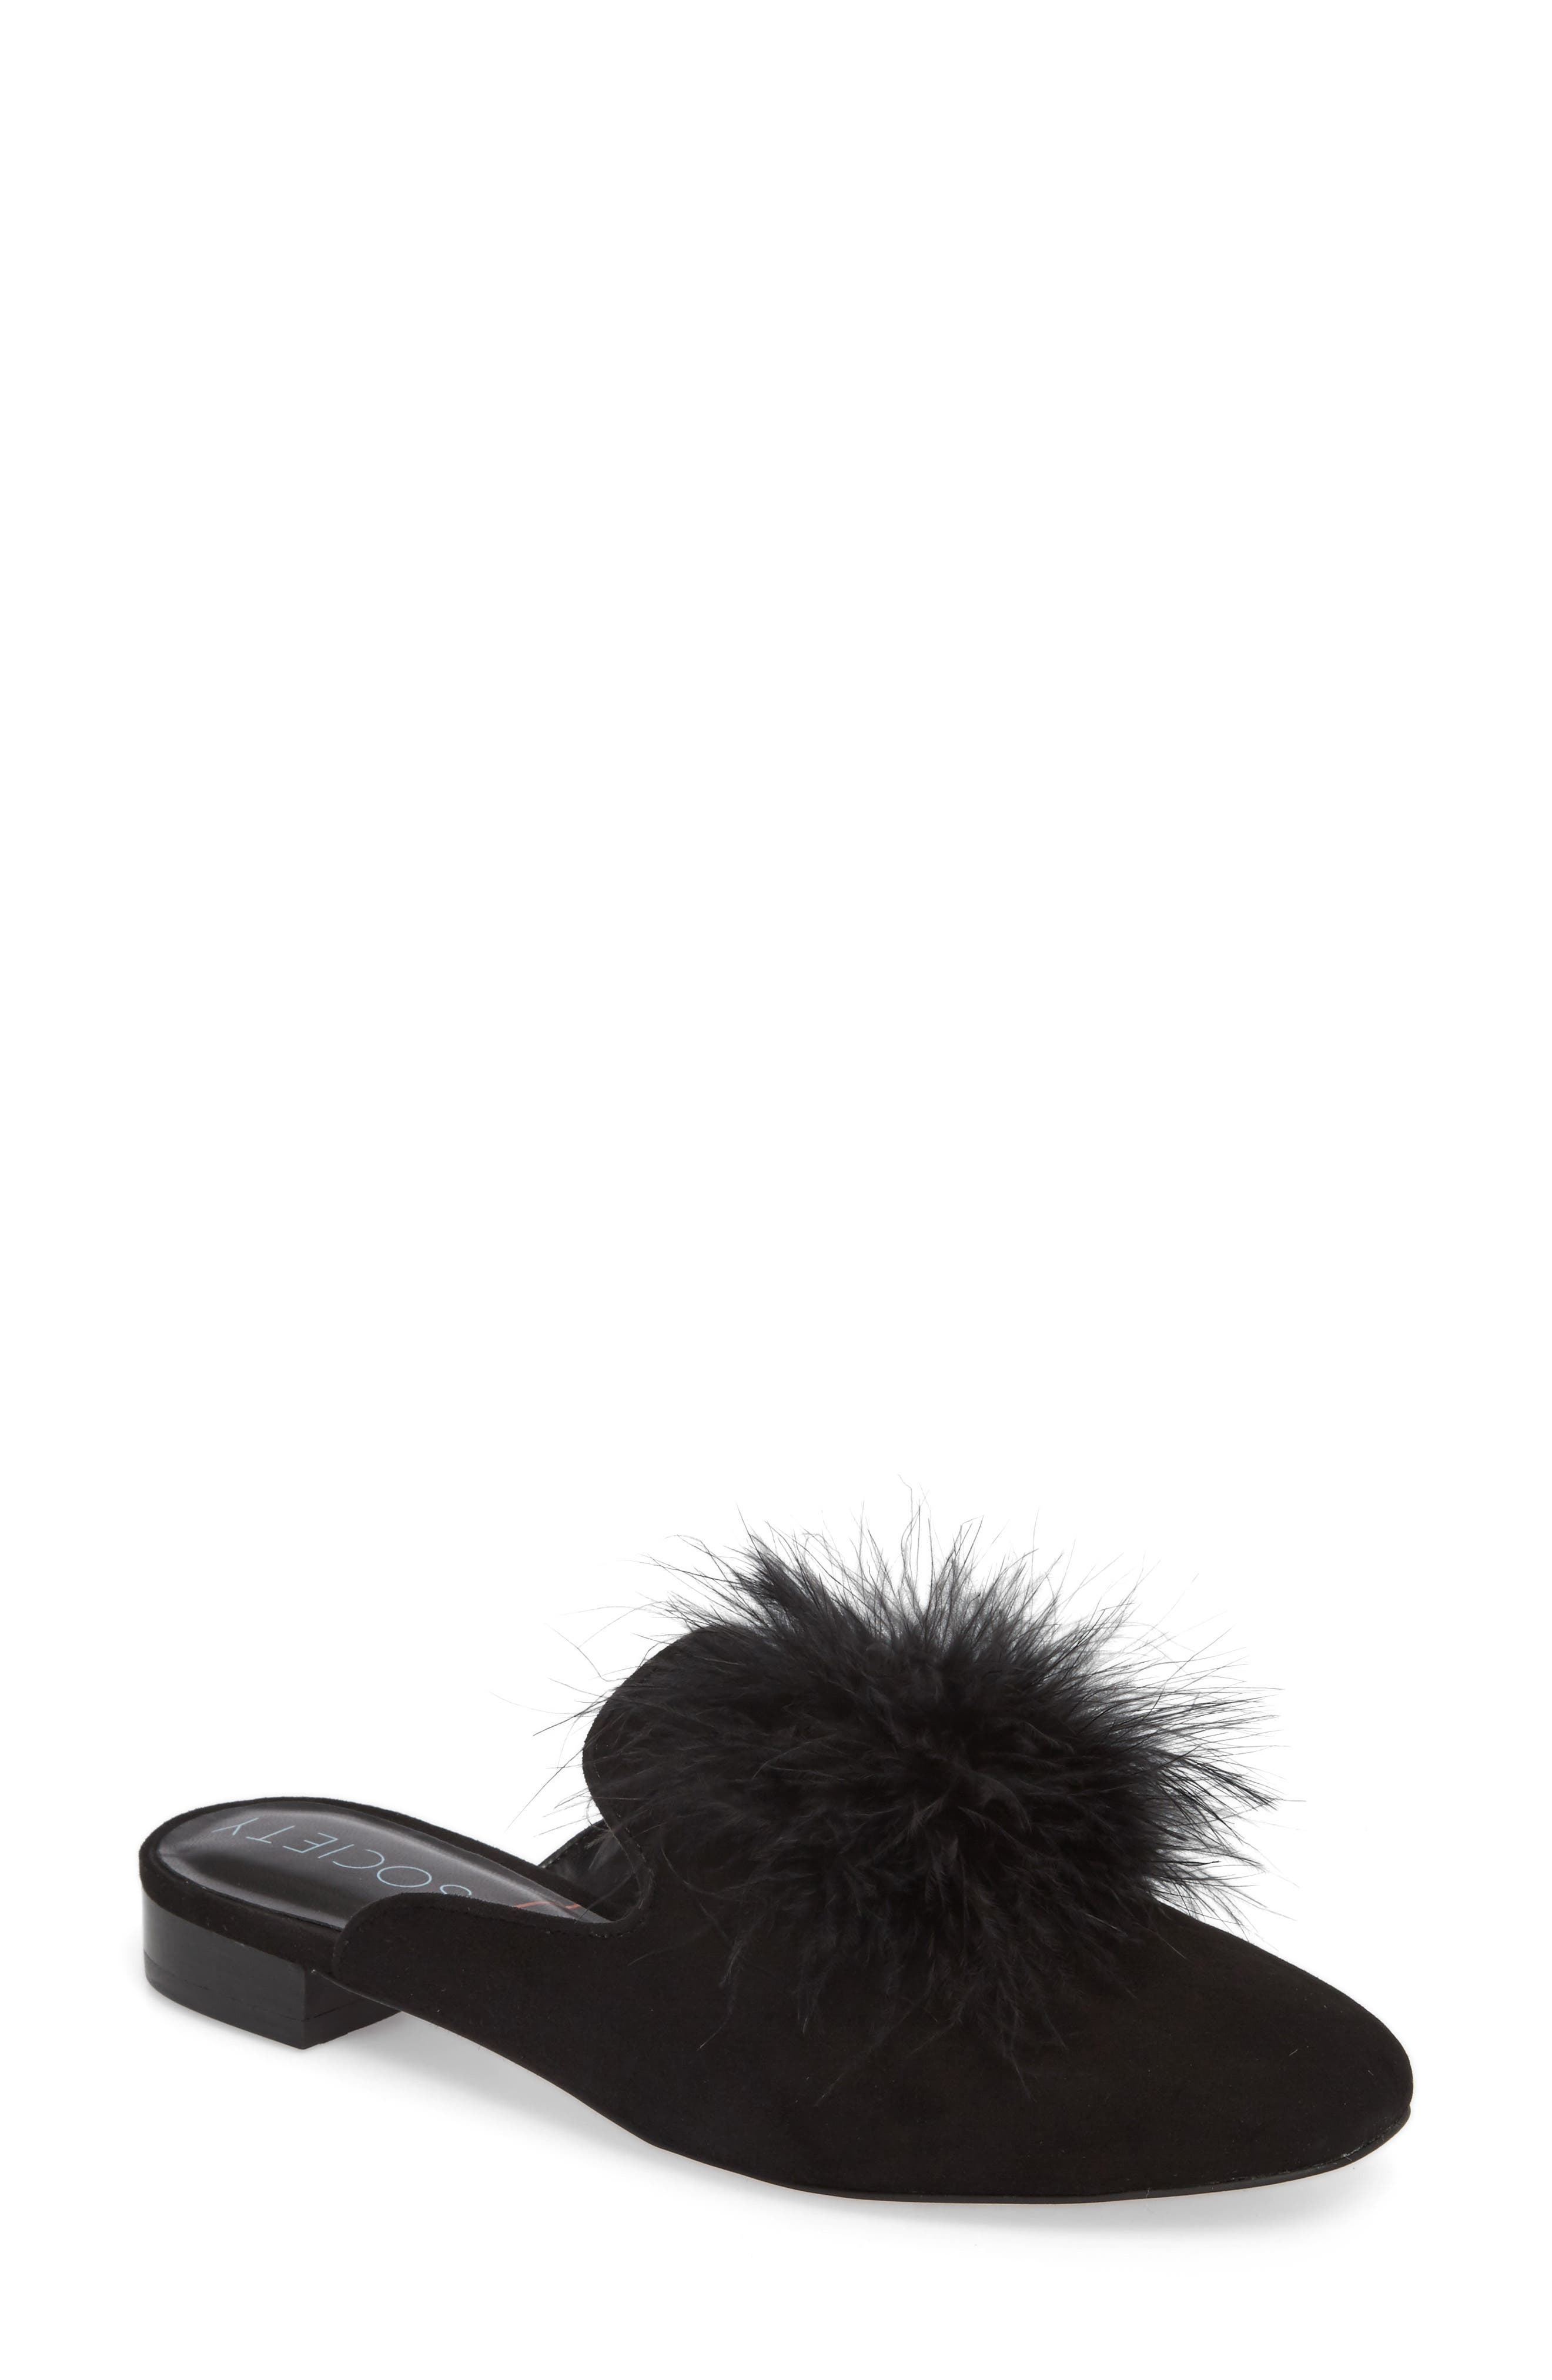 Main Image - Sole Society Cleona Feather Pompom Mule (Women)